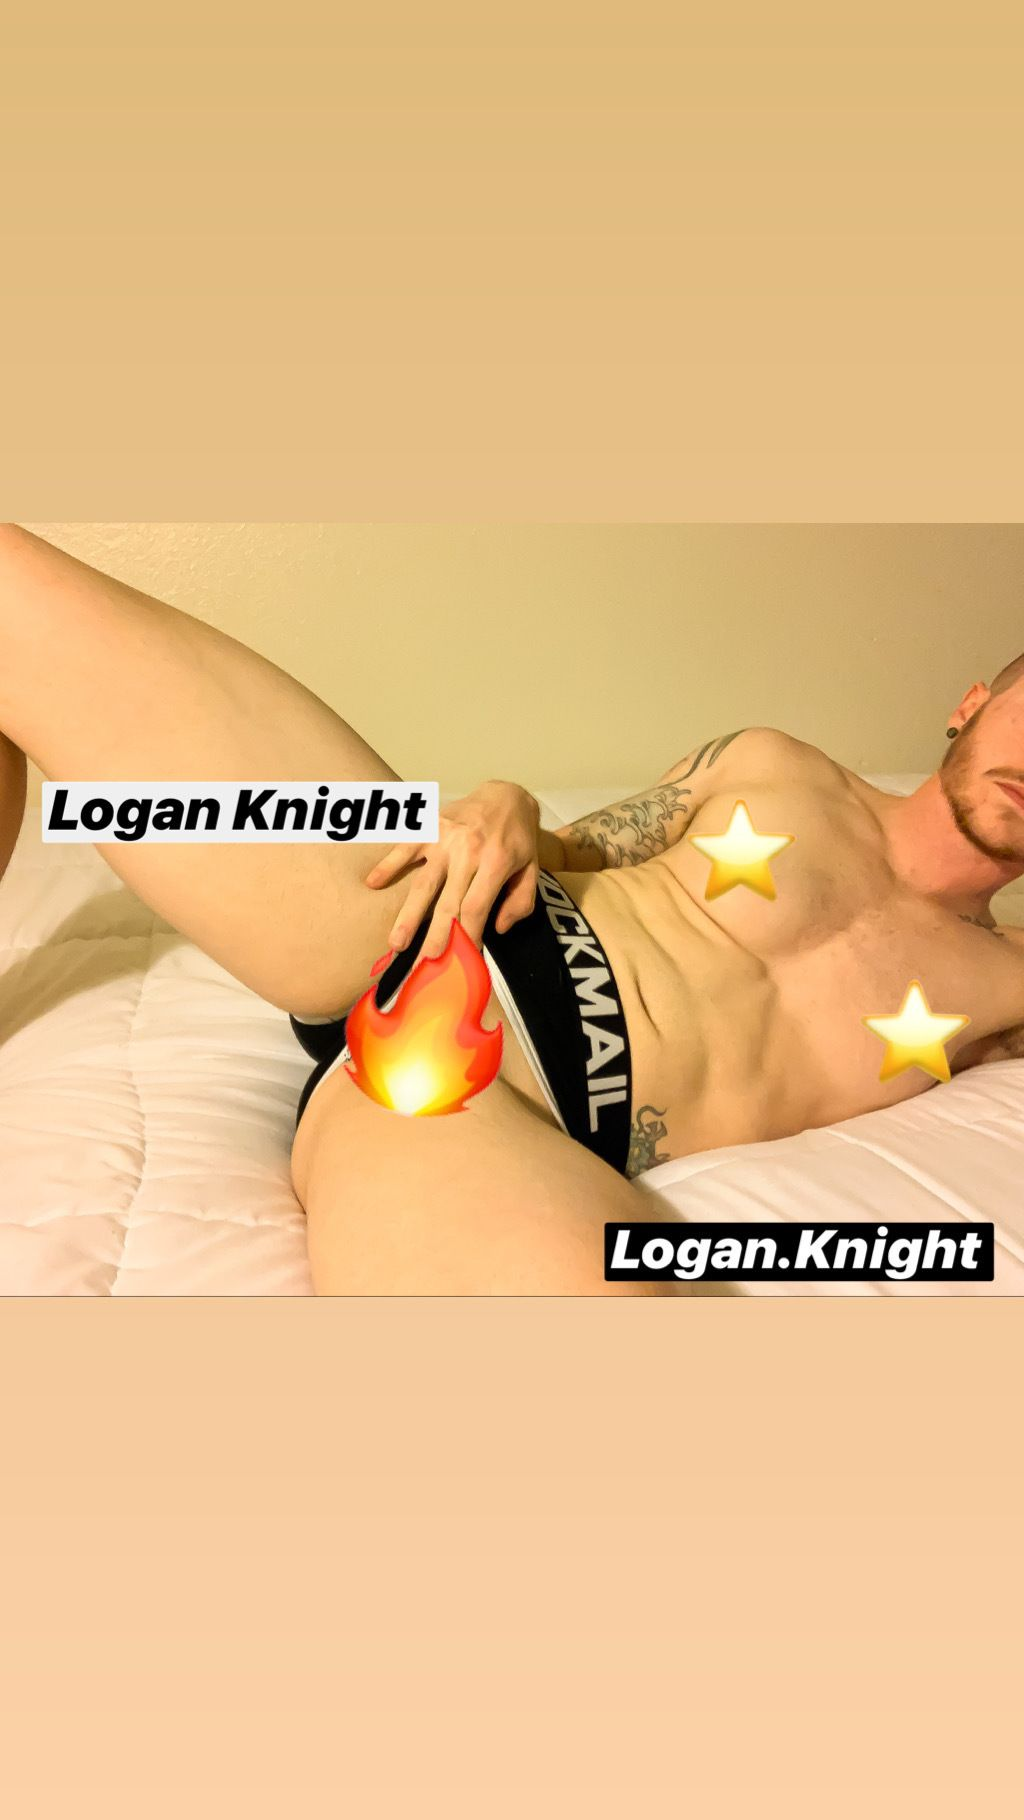 Logan Knight OnlyFans Leaked Photos and Videos